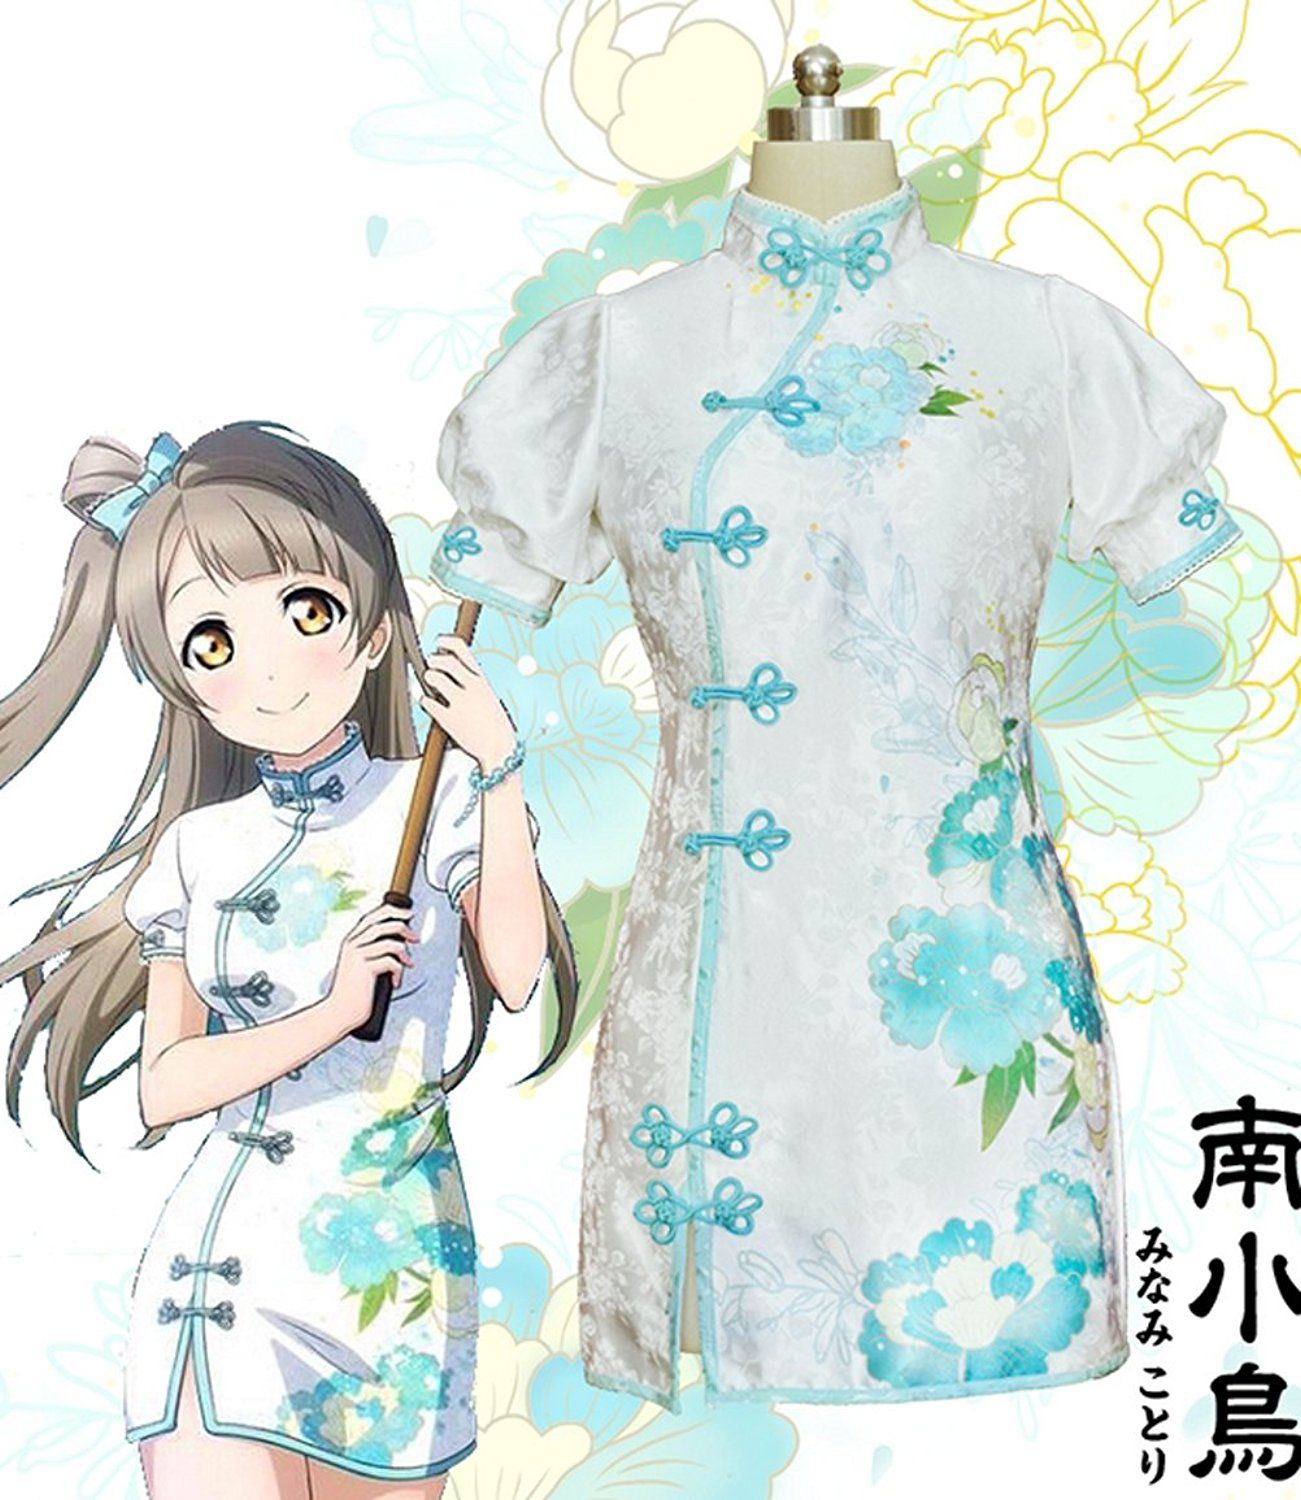 c867b5f6b Shining Womens Love Live Cosplay Kotori Minami Qipao Cheongsam Dress Costume  >>> You can get more details by clicking on the image.